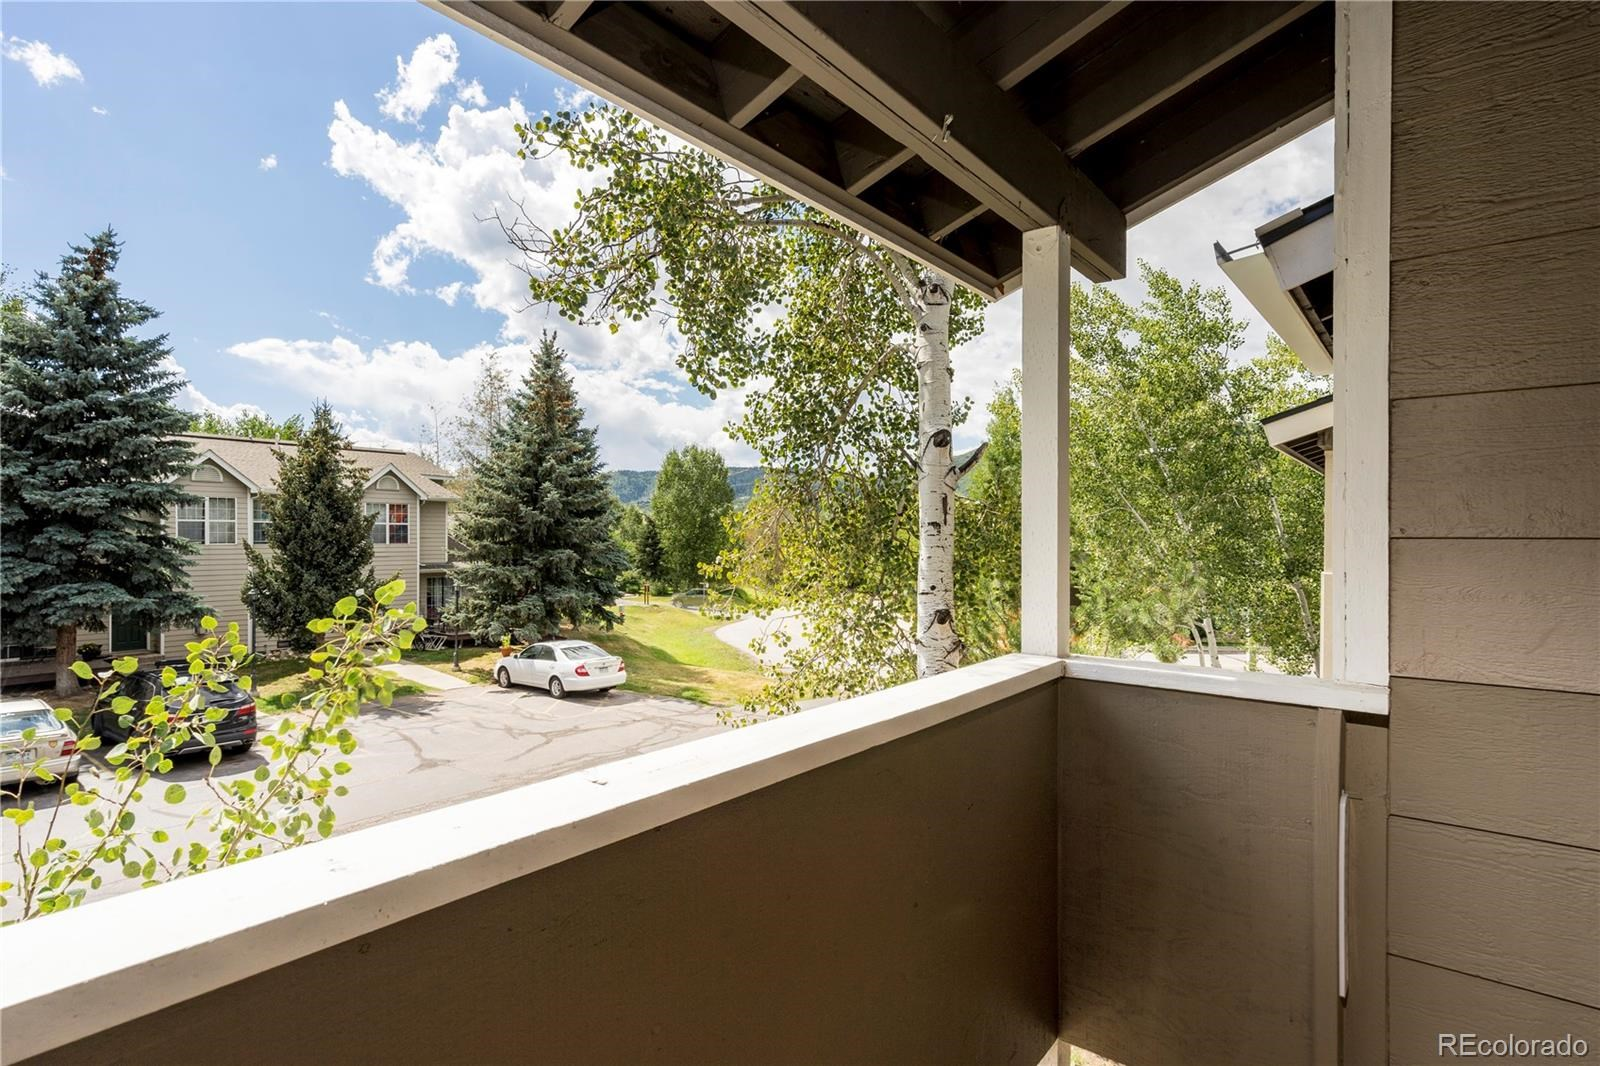 MLS# 5203269 - 12 - 1320 Athens Plaza #4, Steamboat Springs, CO 80487